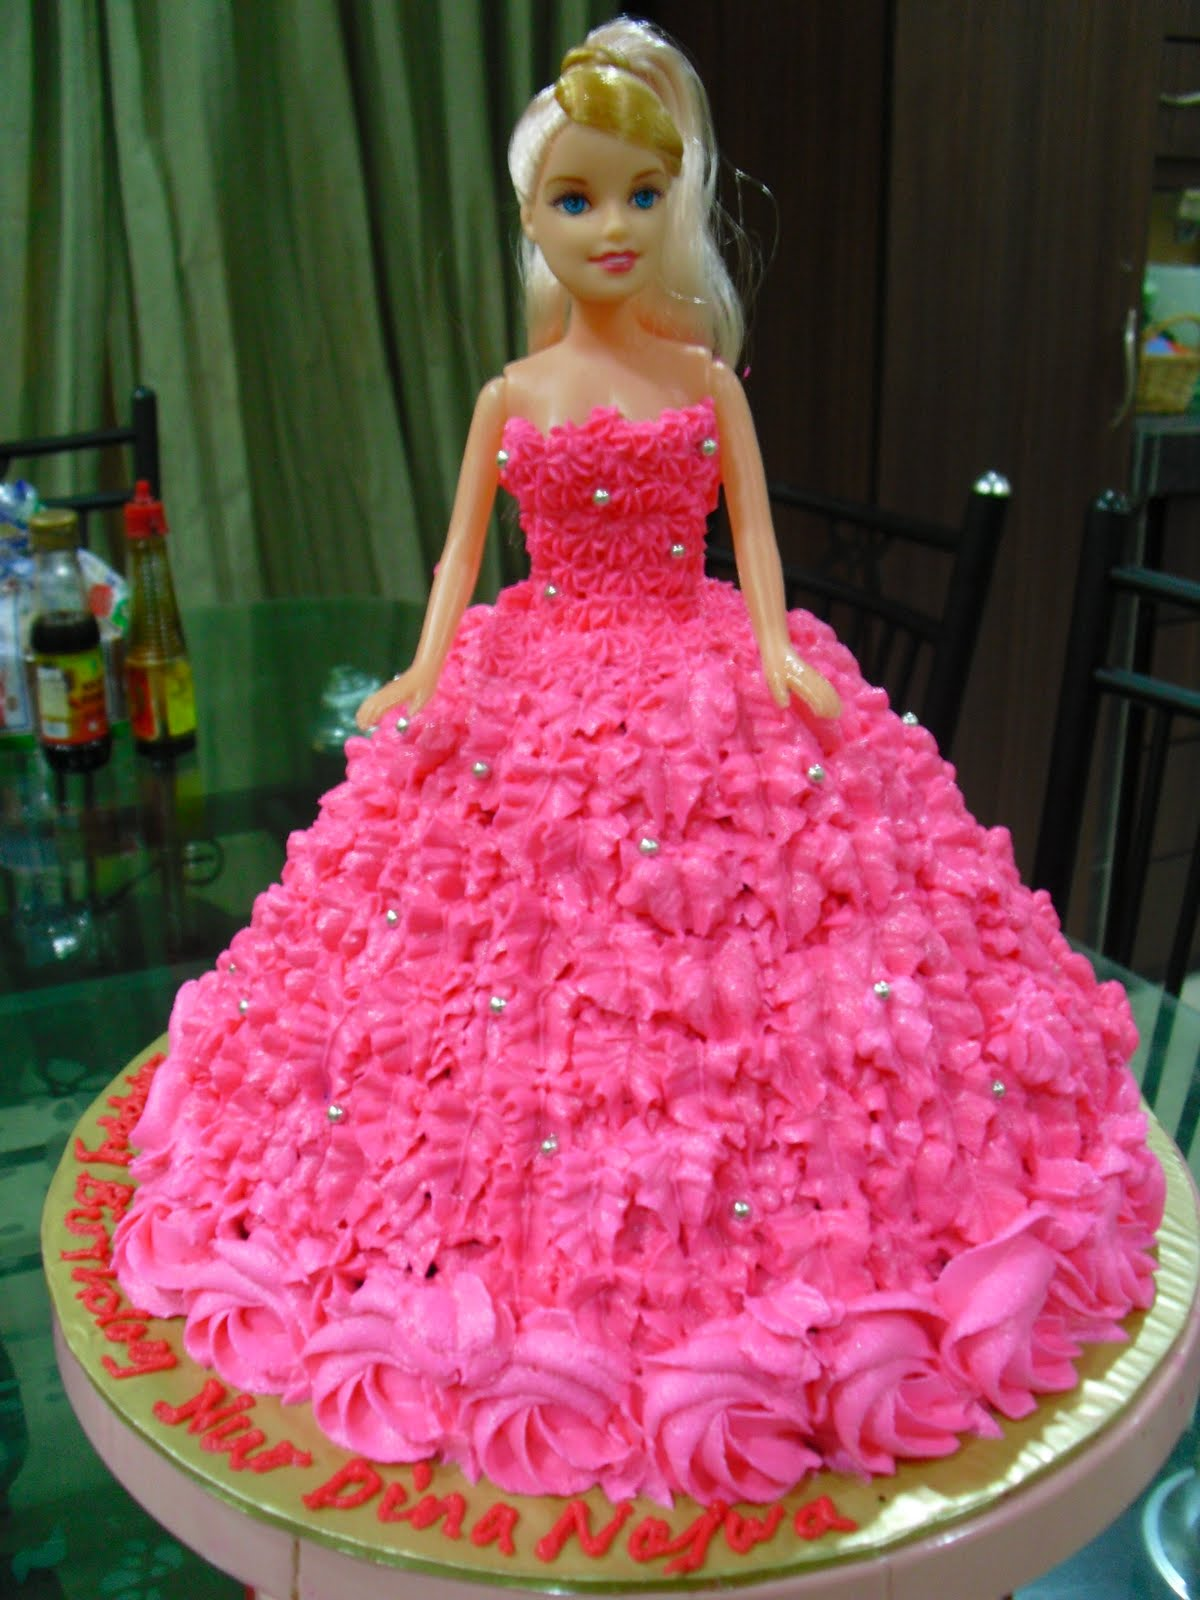 Doll Cake Images With Name : ~Dreamer~: cupcakes